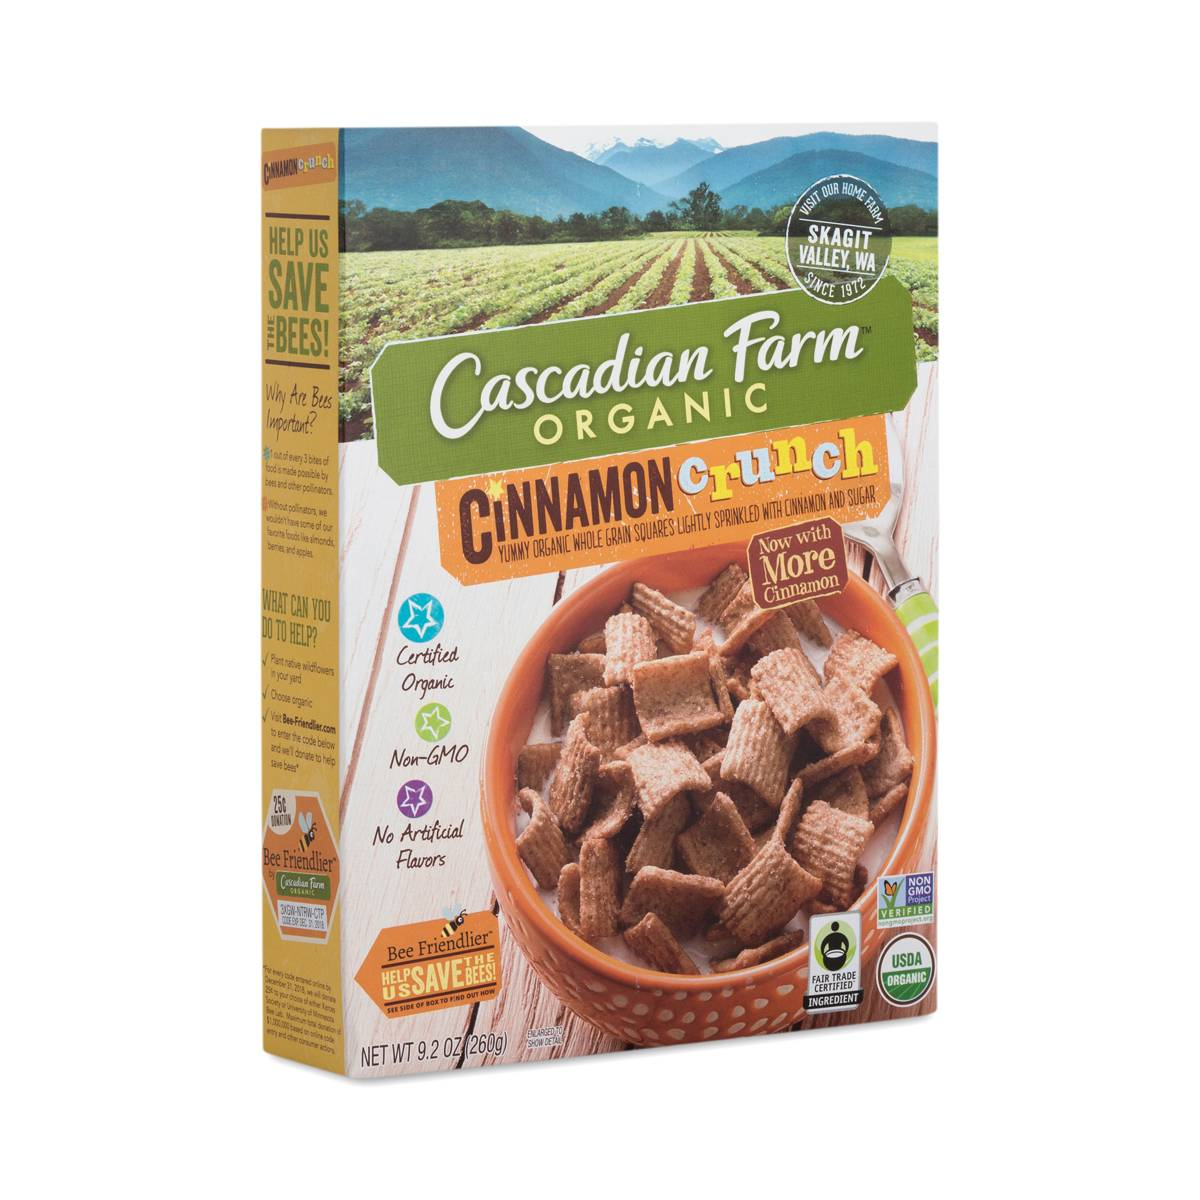 Cinnamon Crunch Cereal By Cascadian Farm